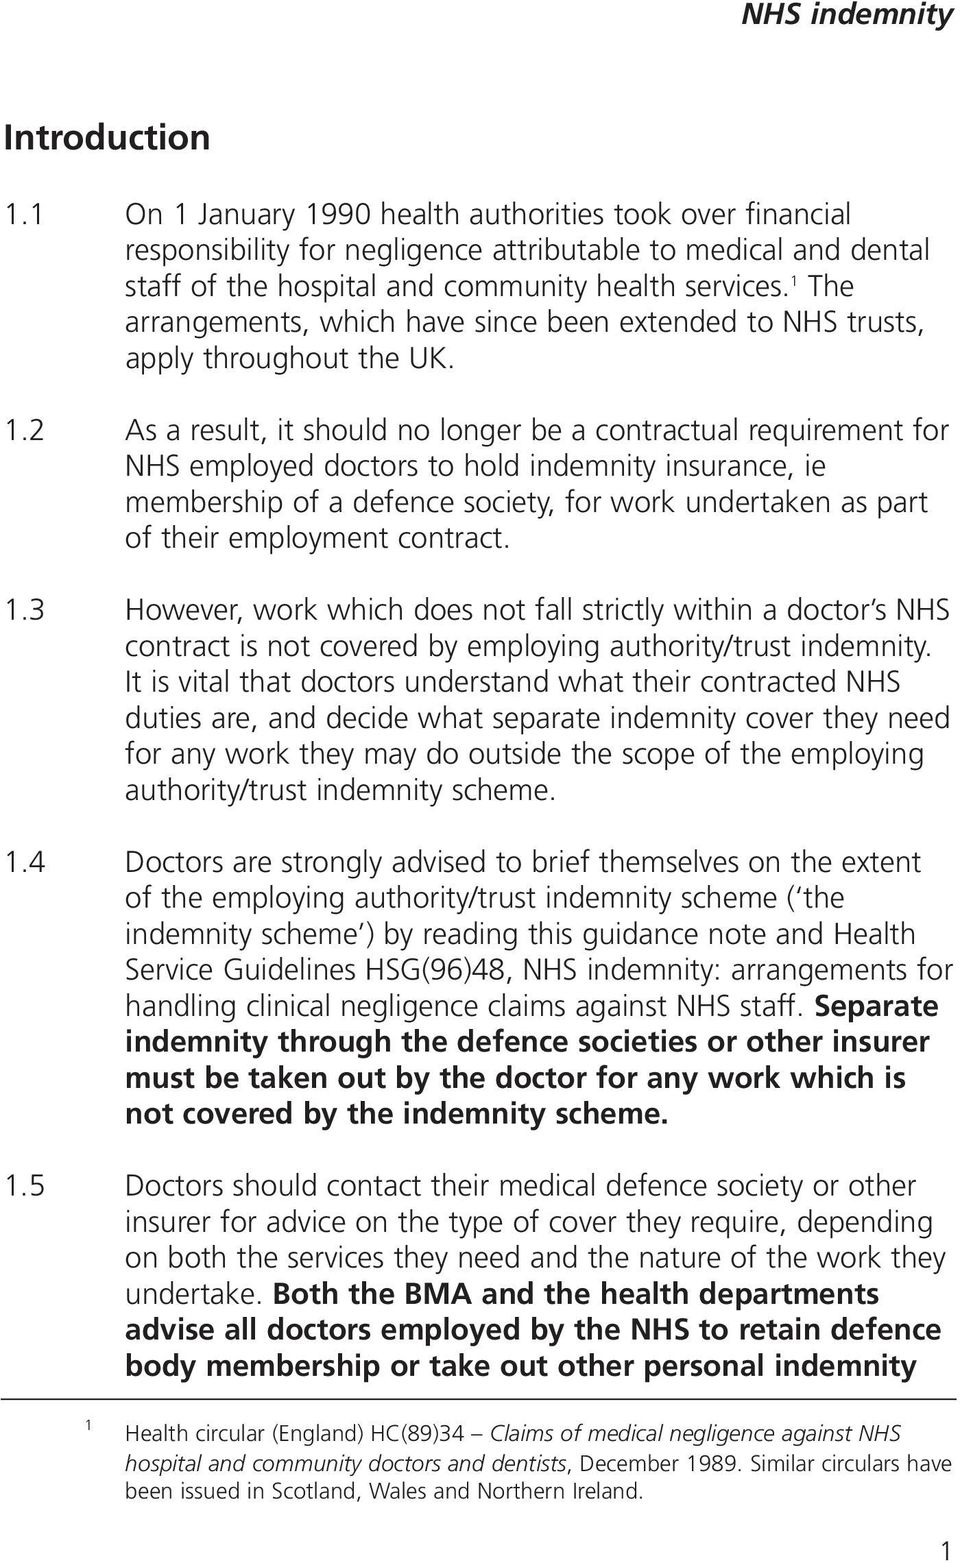 2 As a result, it should no longer be a contractual requirement for NHS employed doctors to hold indemnity insurance, ie membership of a defence society, for work undertaken as part of their